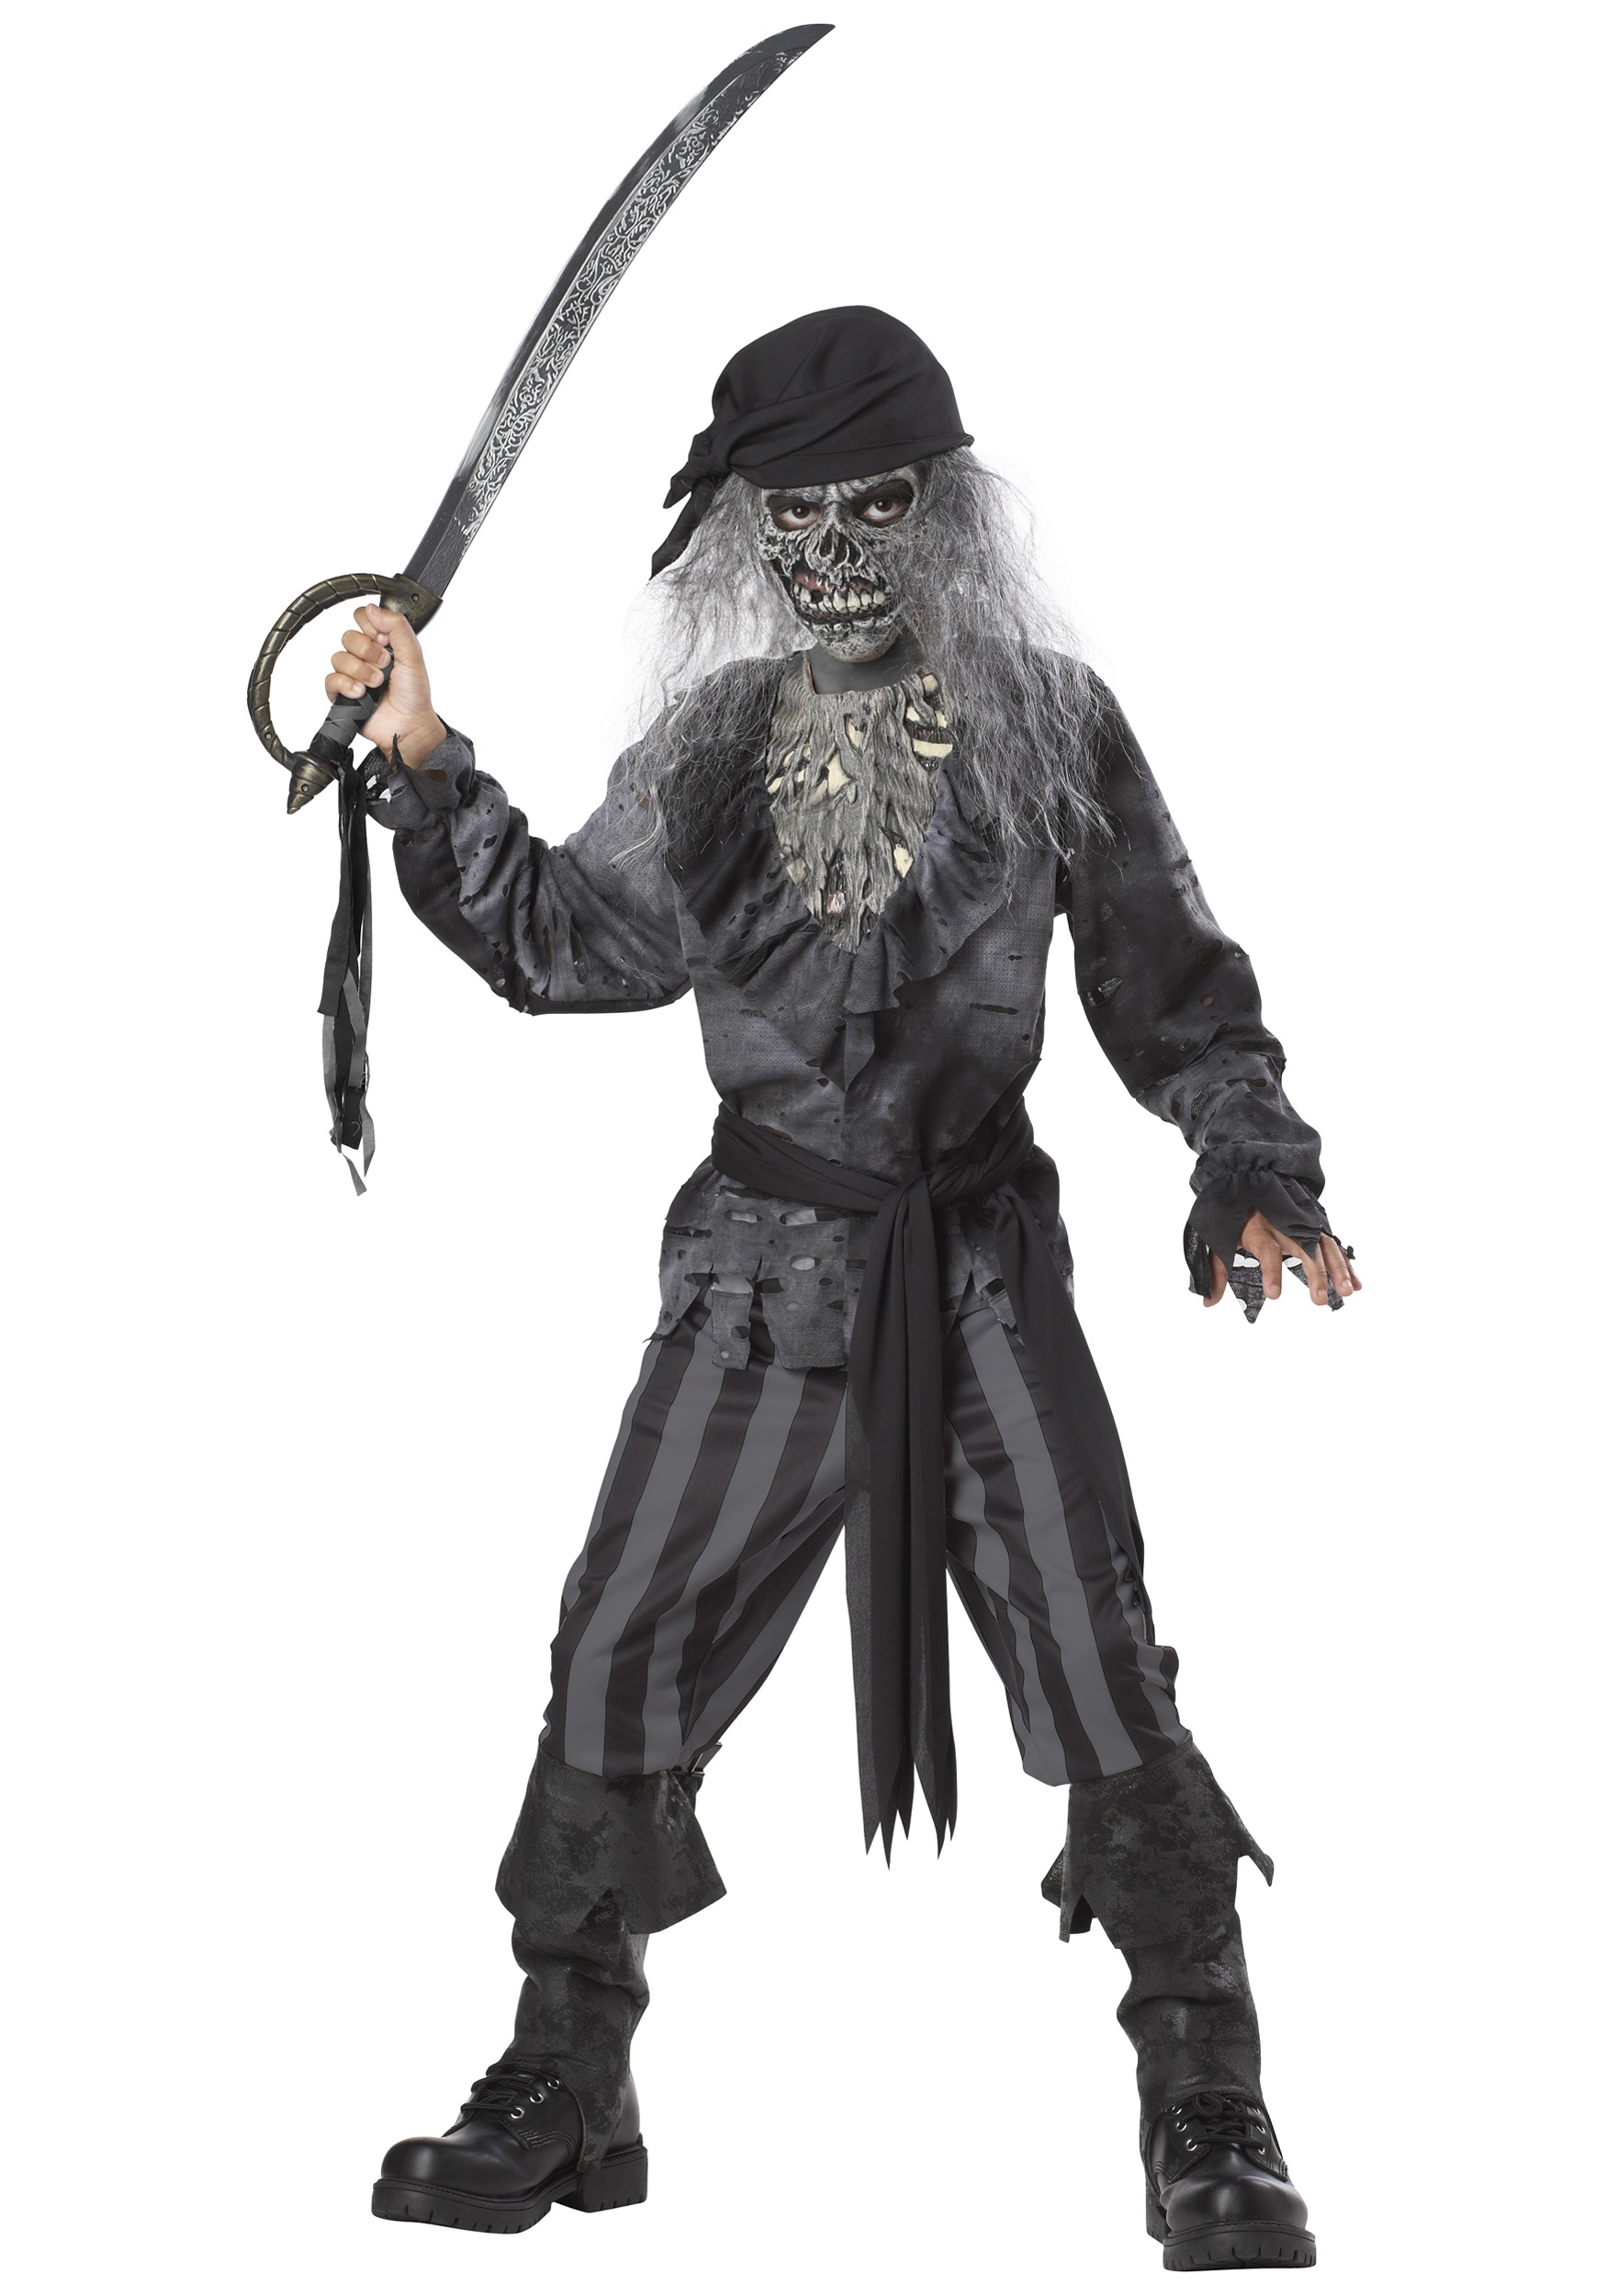 Boysu0027 Ghost Ship Pirate Costume  sc 1 st  Halloween Costume & Boysu0027 Ghost Ship Pirate Costume - Scary Halloween Costumes for Tweens